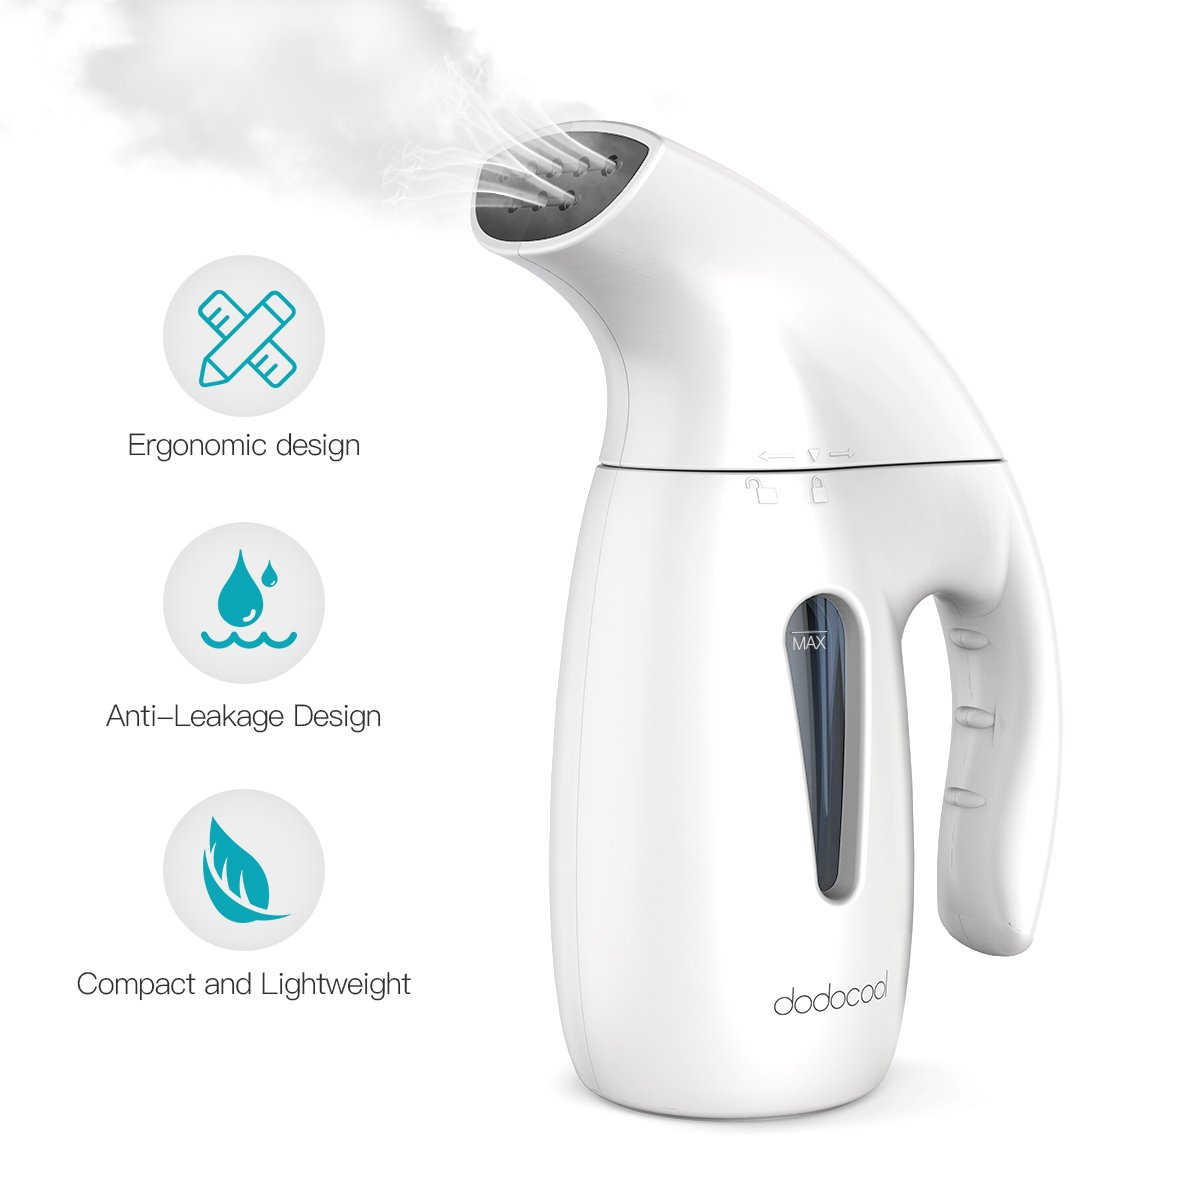 dodocool ,2018 New Technology- Steamer for Clothes-180ML, 5-in-1 Steamer Clothes,Garment Steamer,Fabric Steamer,Travel Steamer,Handheld Steamer Wrinkle Remover Automatic Shut-Off Safety Protection by dodocool